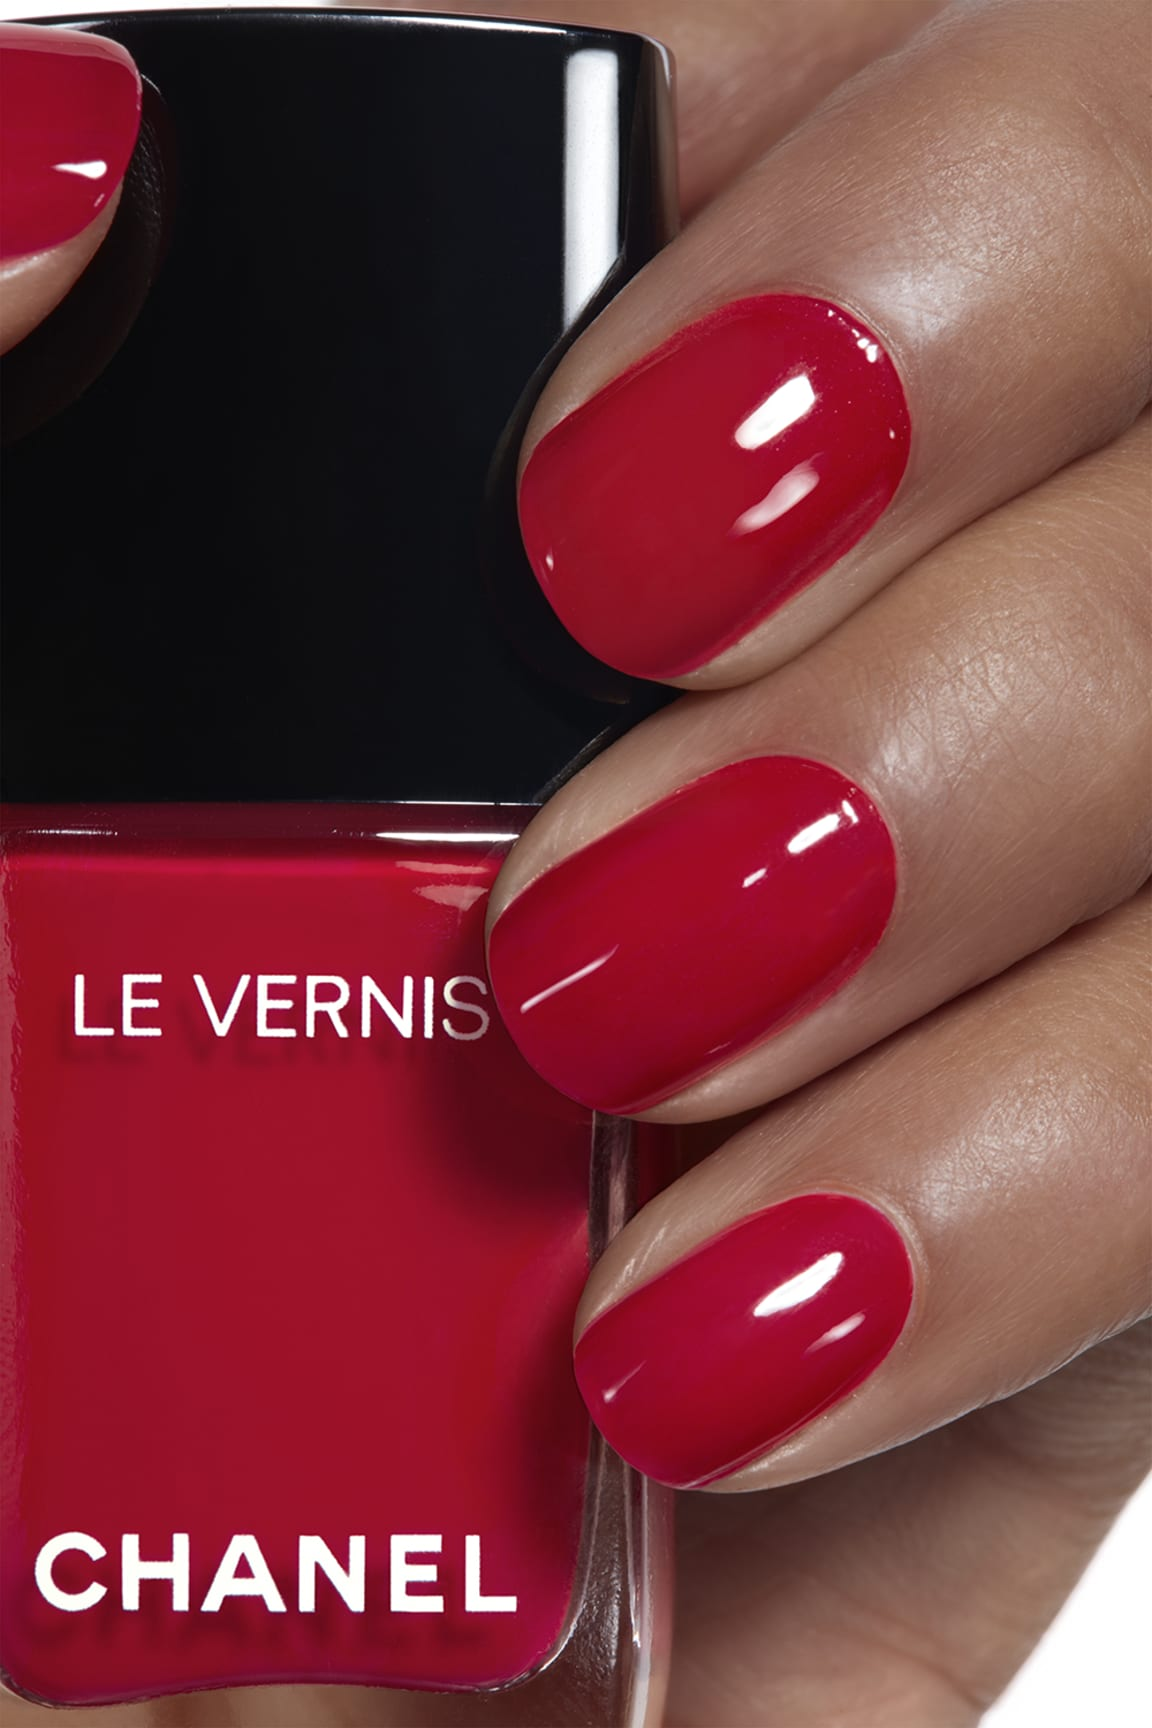 Application makeup visual 1 - LE VERNIS 528 - ROUGE PUISSANT